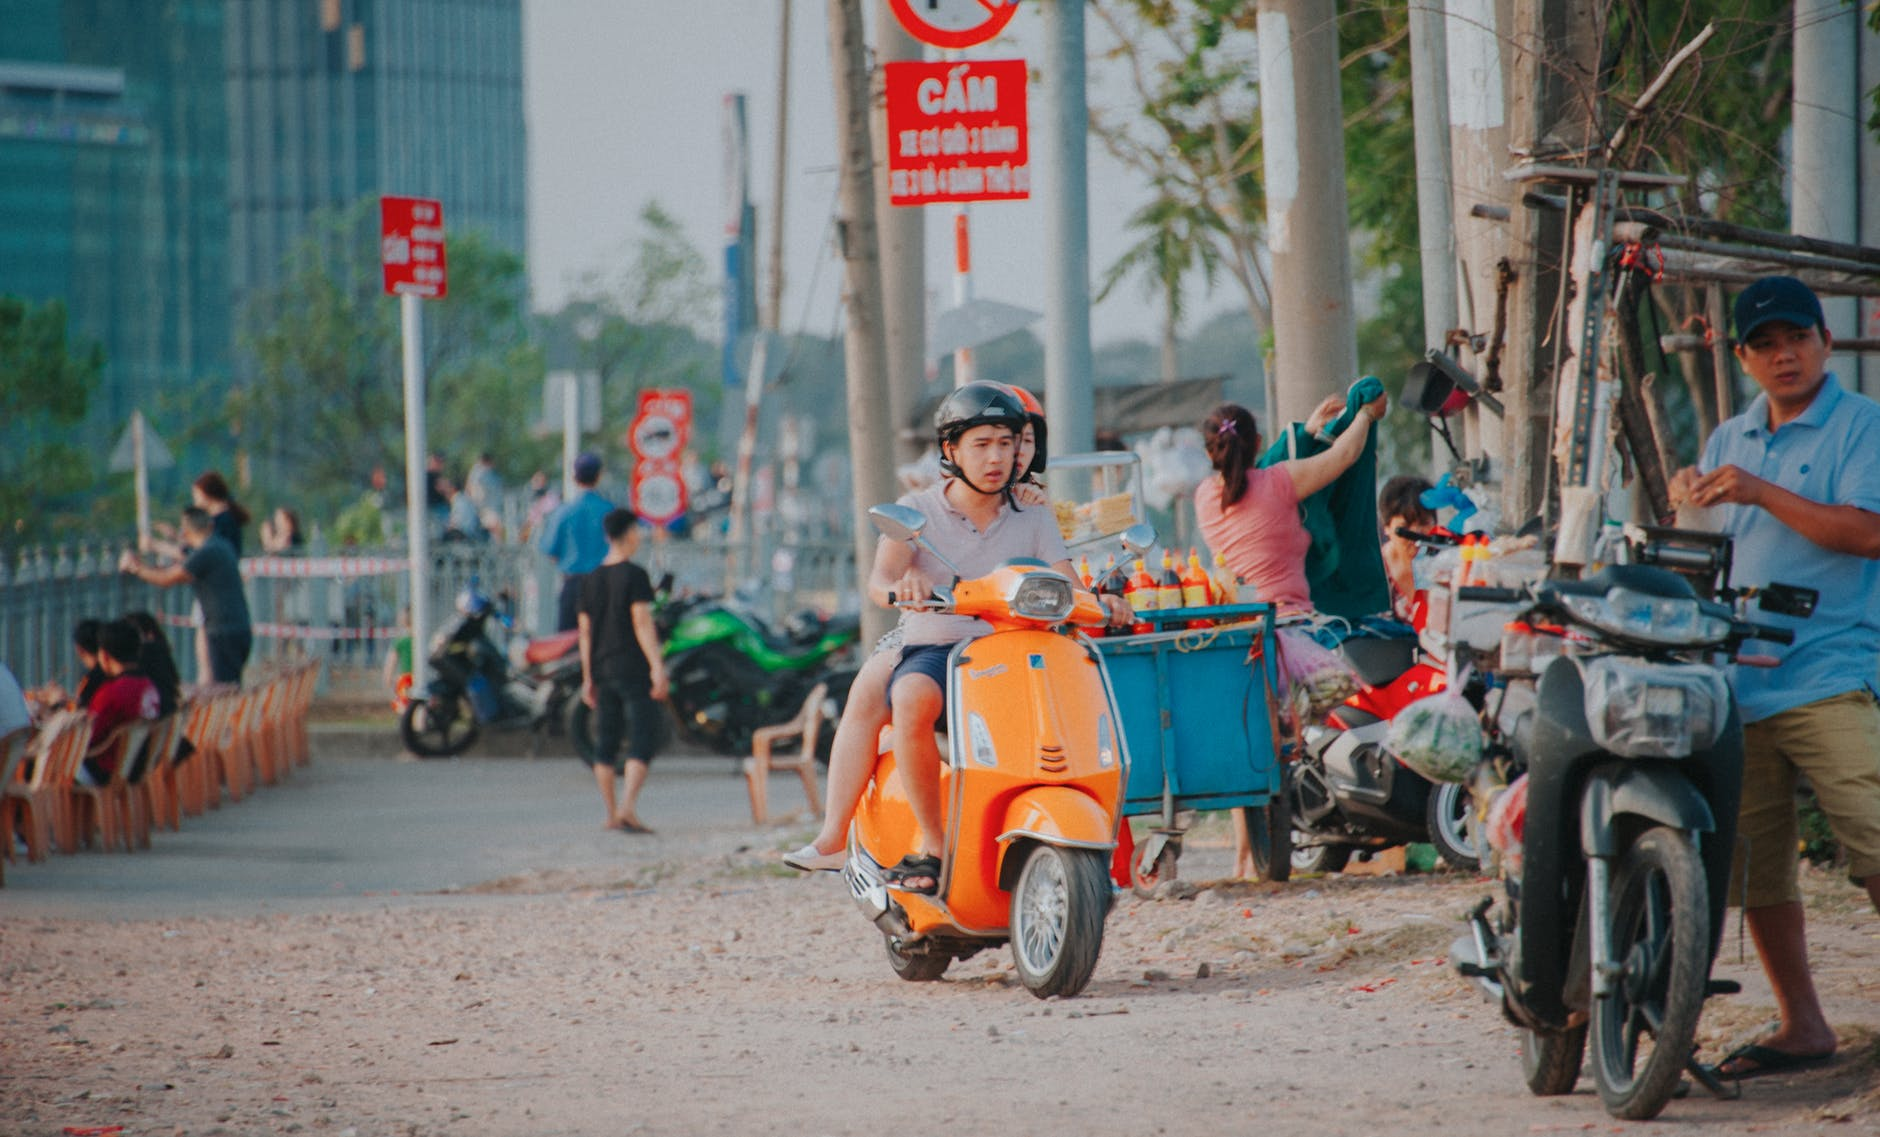 Man wearing grey shirt riding on orange motor scooter at daytime photo